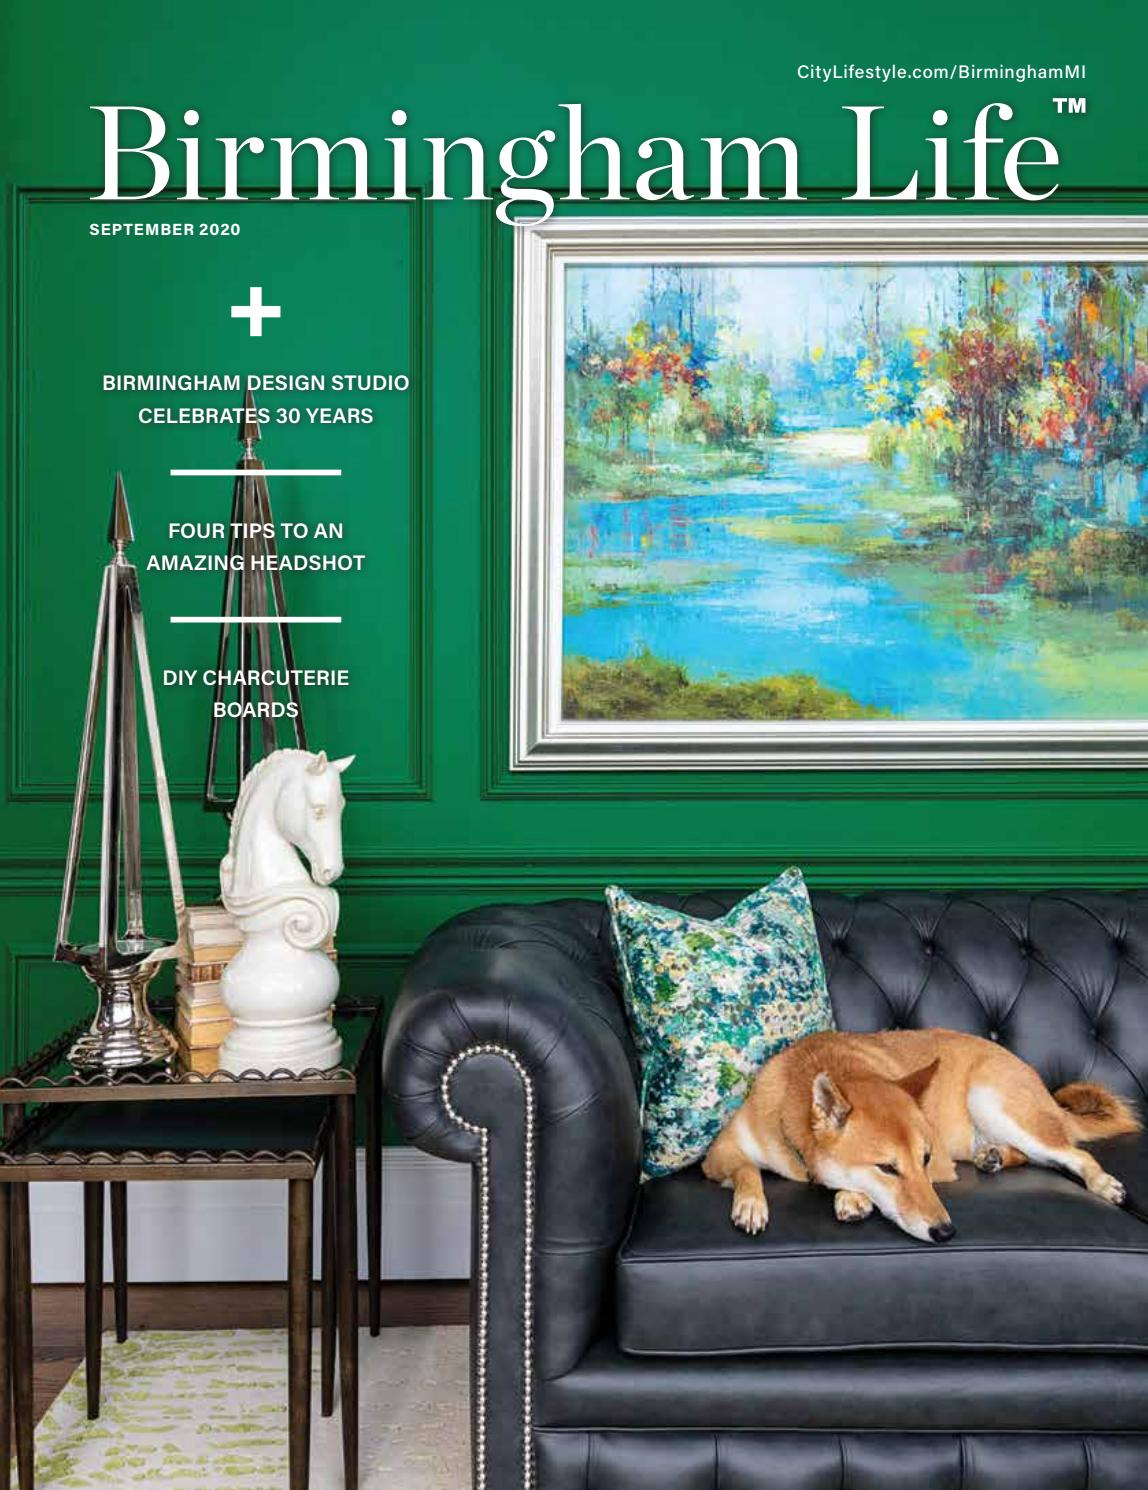 Birmingham Life Mi September 2020 By Lifestyle Publications Issuu